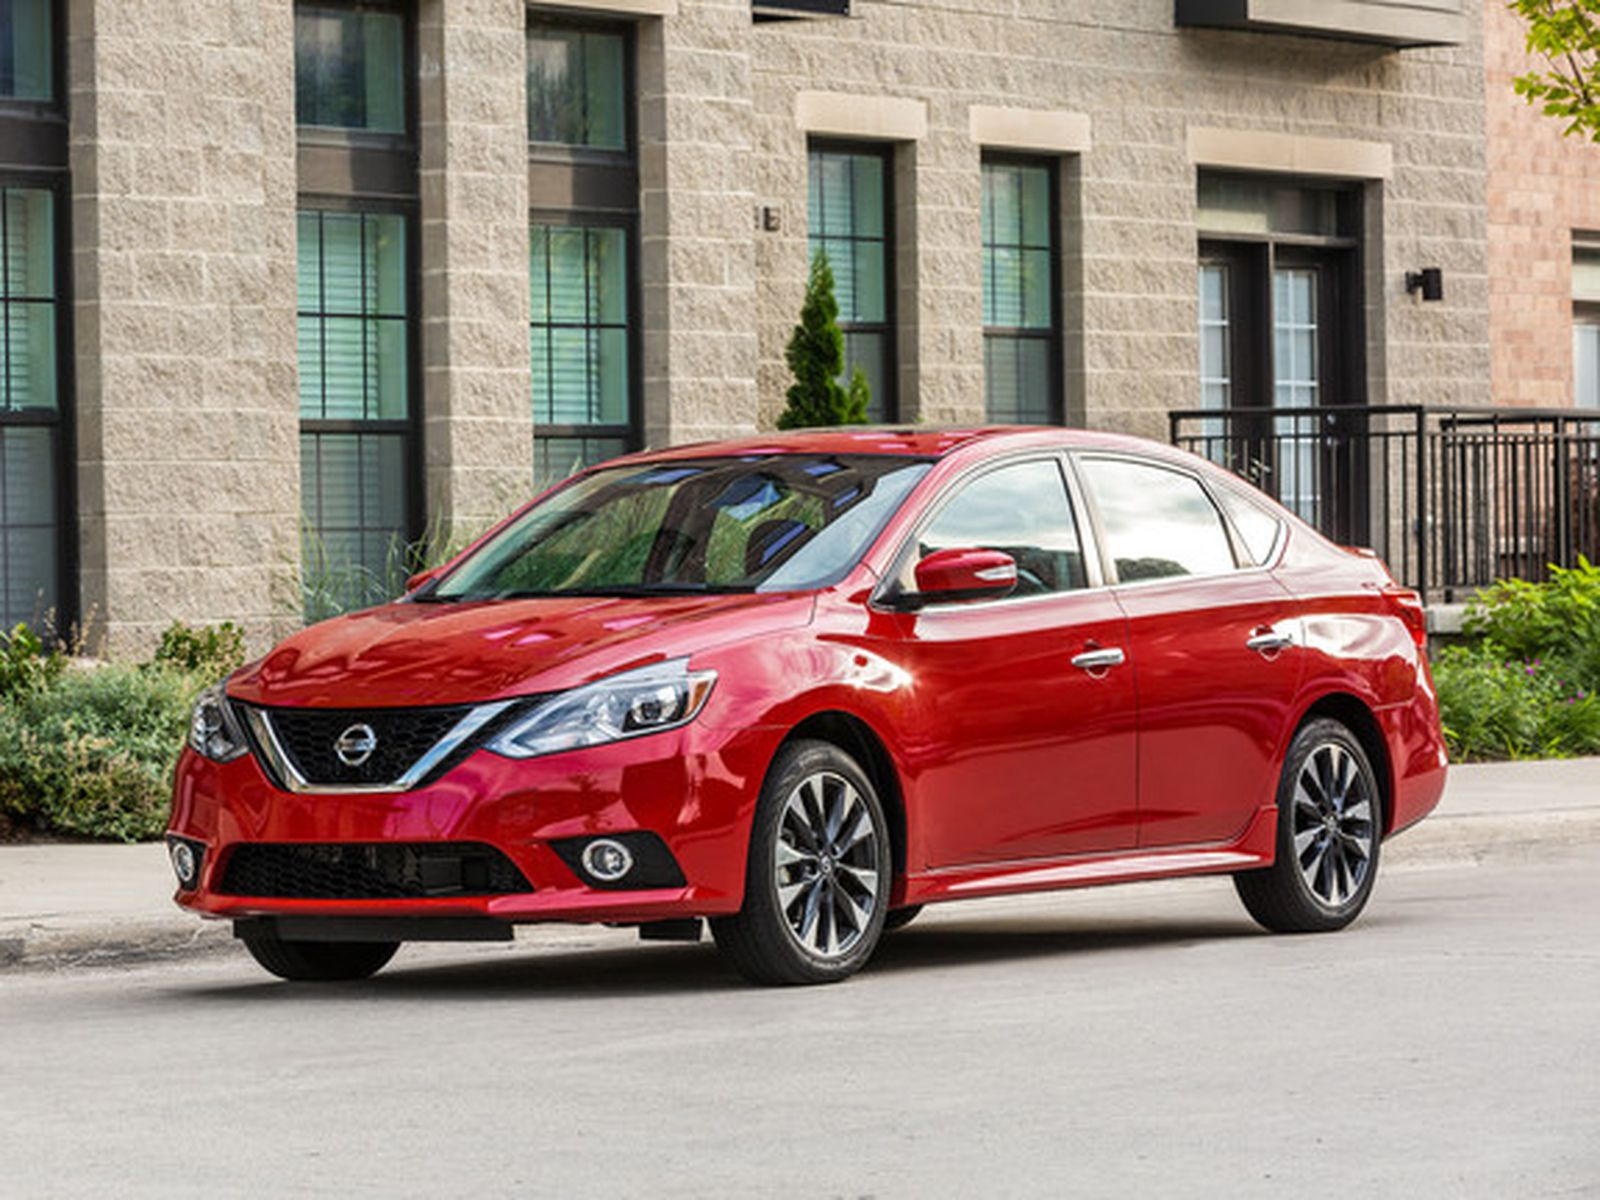 Nissan Sentra Features Carplay Starting With New 2019 Model Macrumors